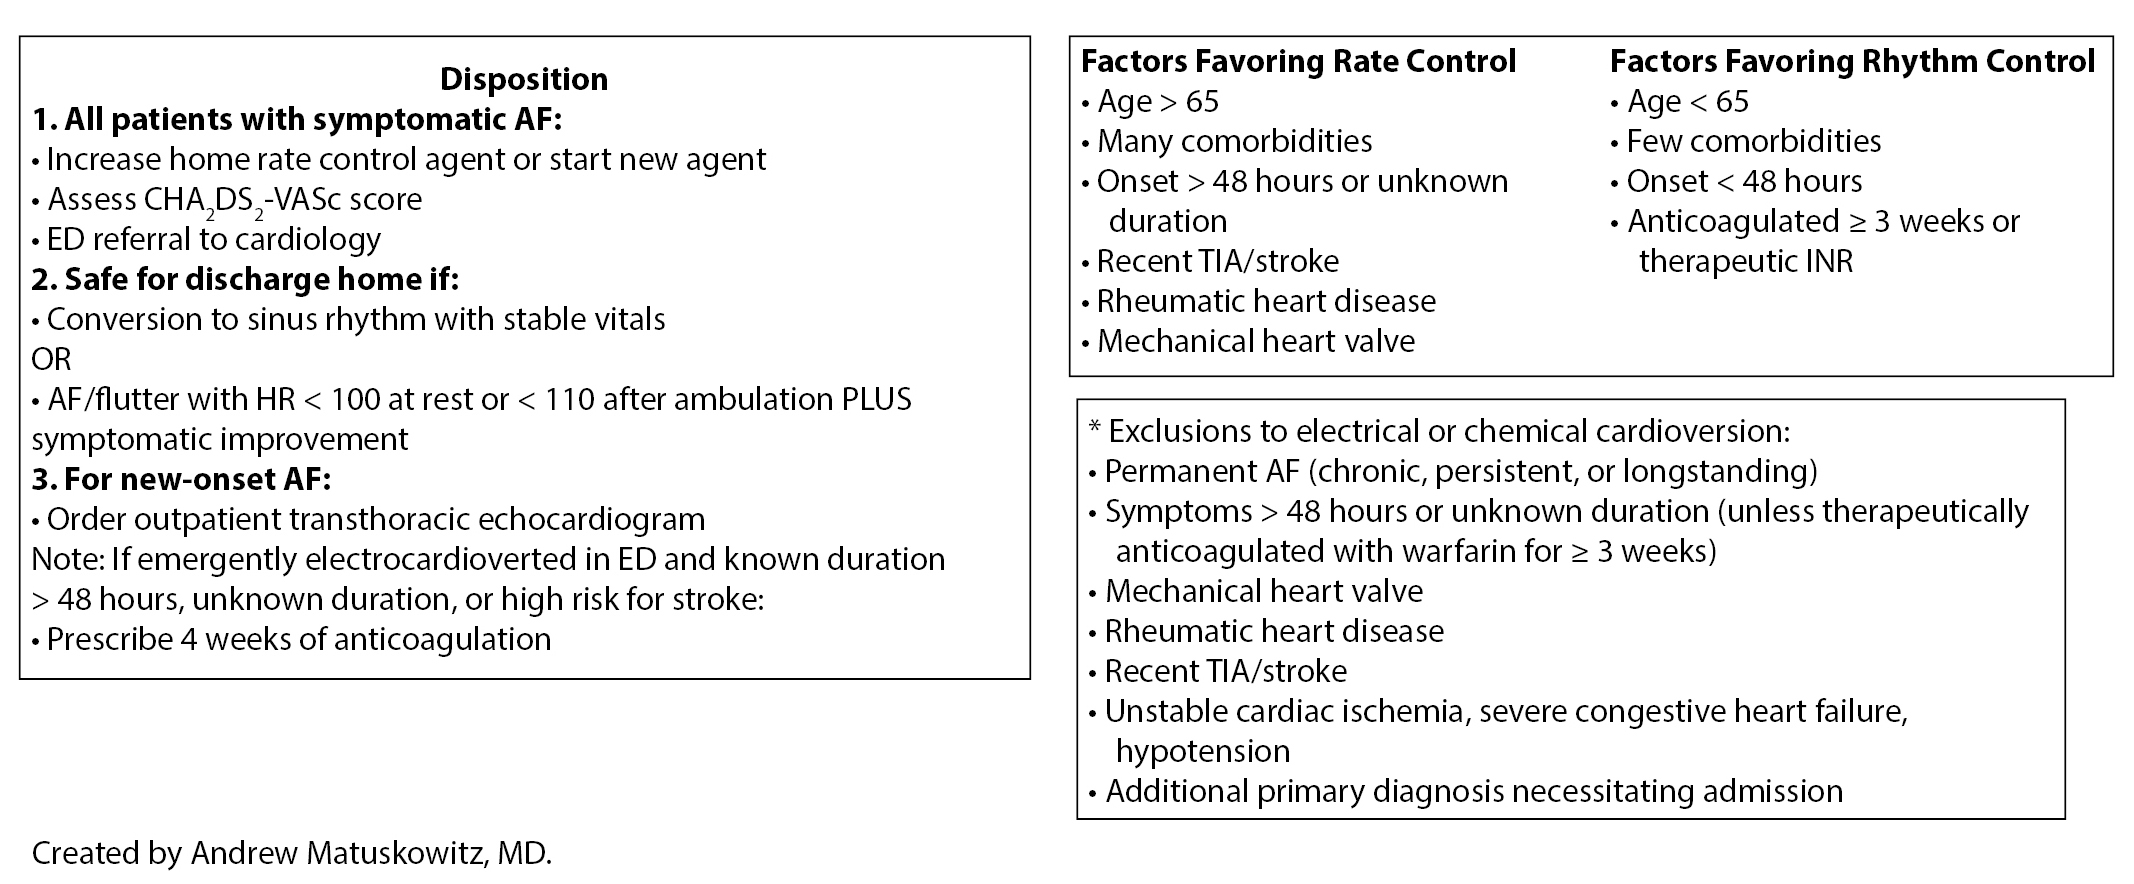 Evidence-based Management of Atrial Fibrillation in the